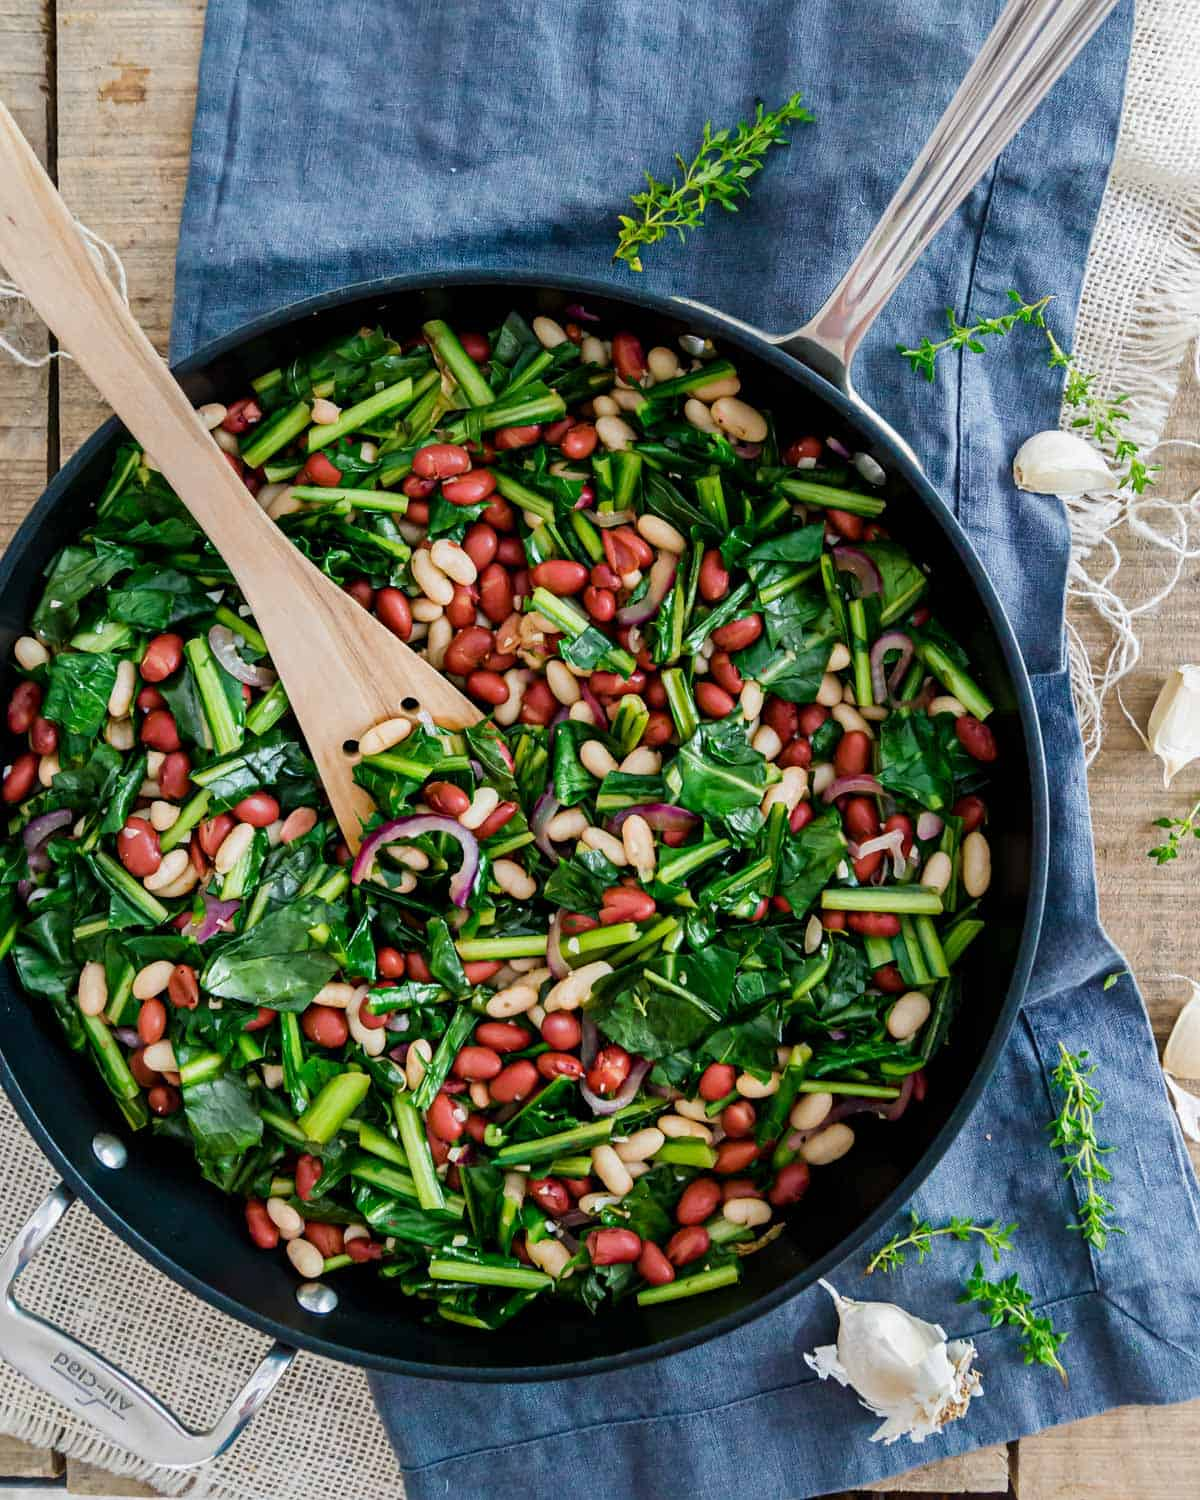 Sautéed dandelion greens with beans skillet recipe is an easy, meatless meal.